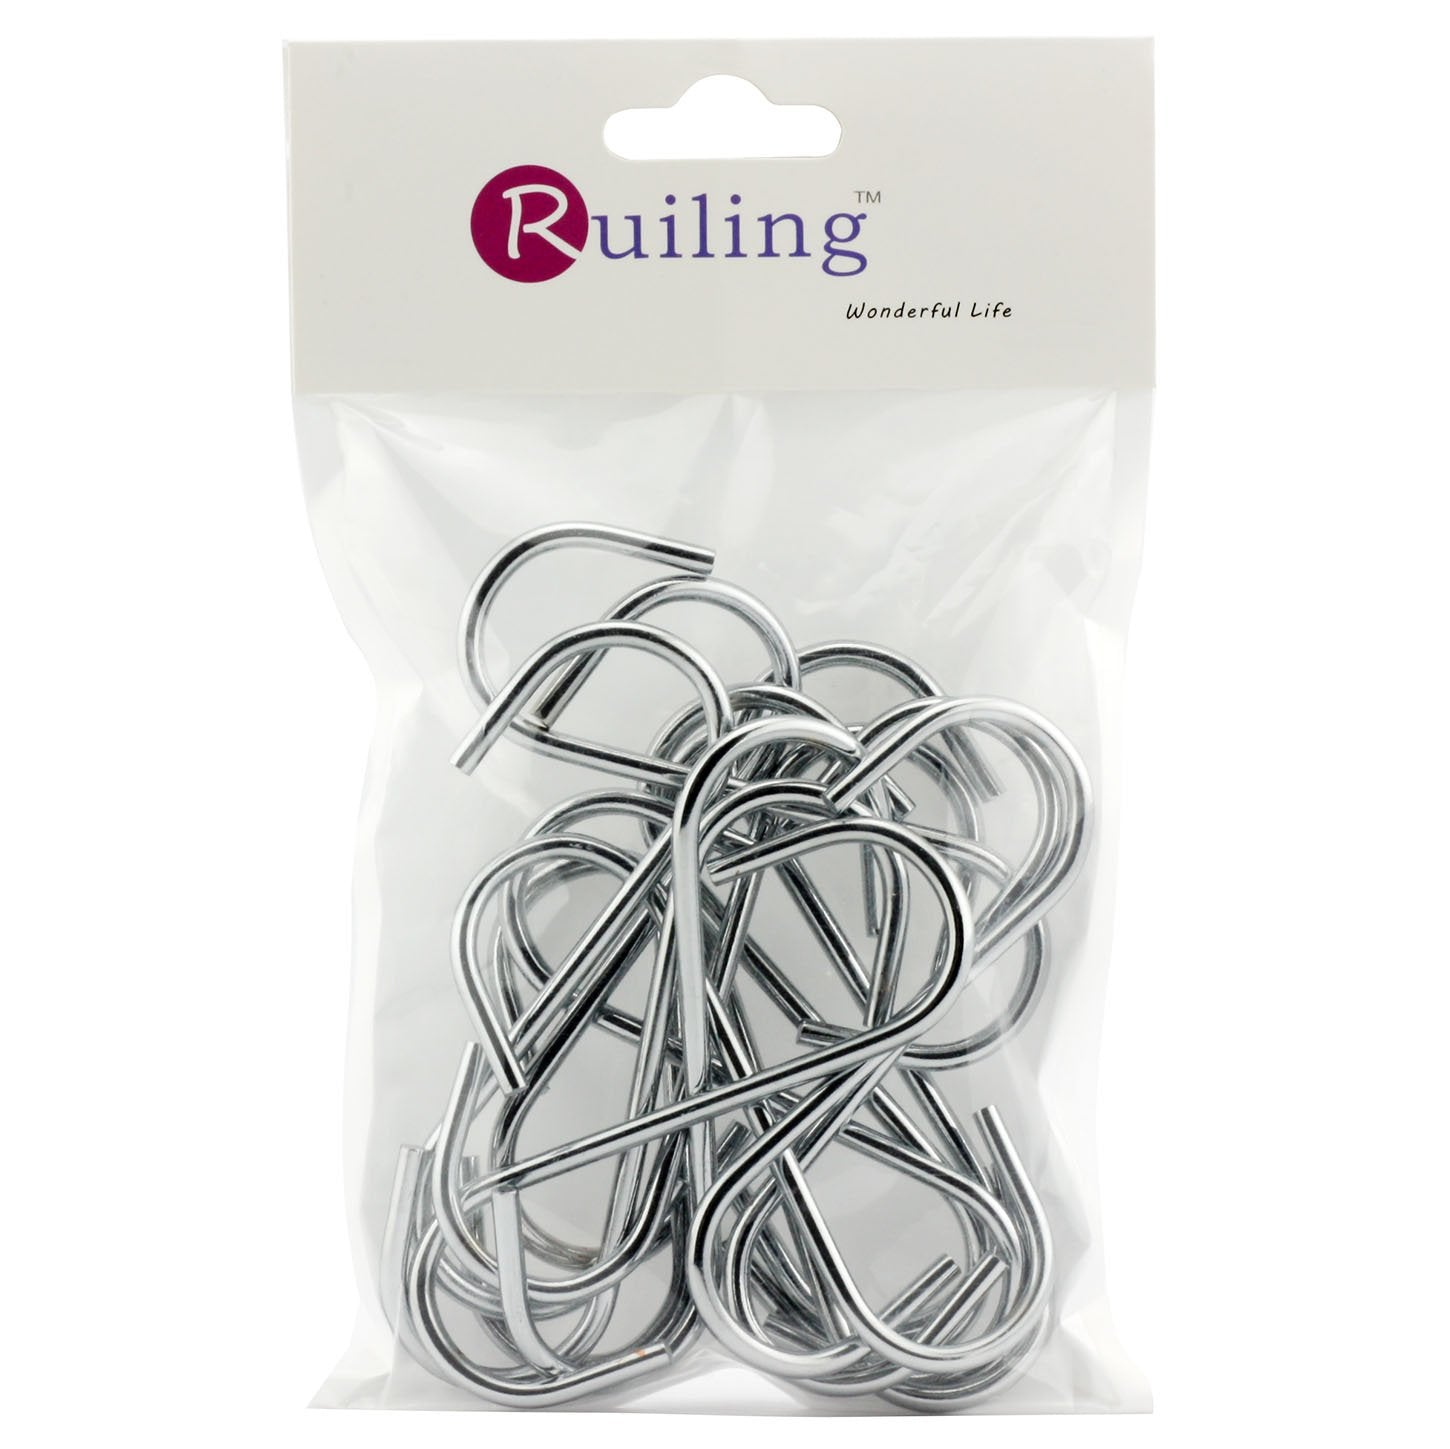 RuiLing 20 Pack 3.5 Inch Chrome Finish Steel Hanging Hooks - Heavy-Duty S Shaped Hook, for Kitchenware, Pots, Utensils, Towels, Gardening Tools, Clothes